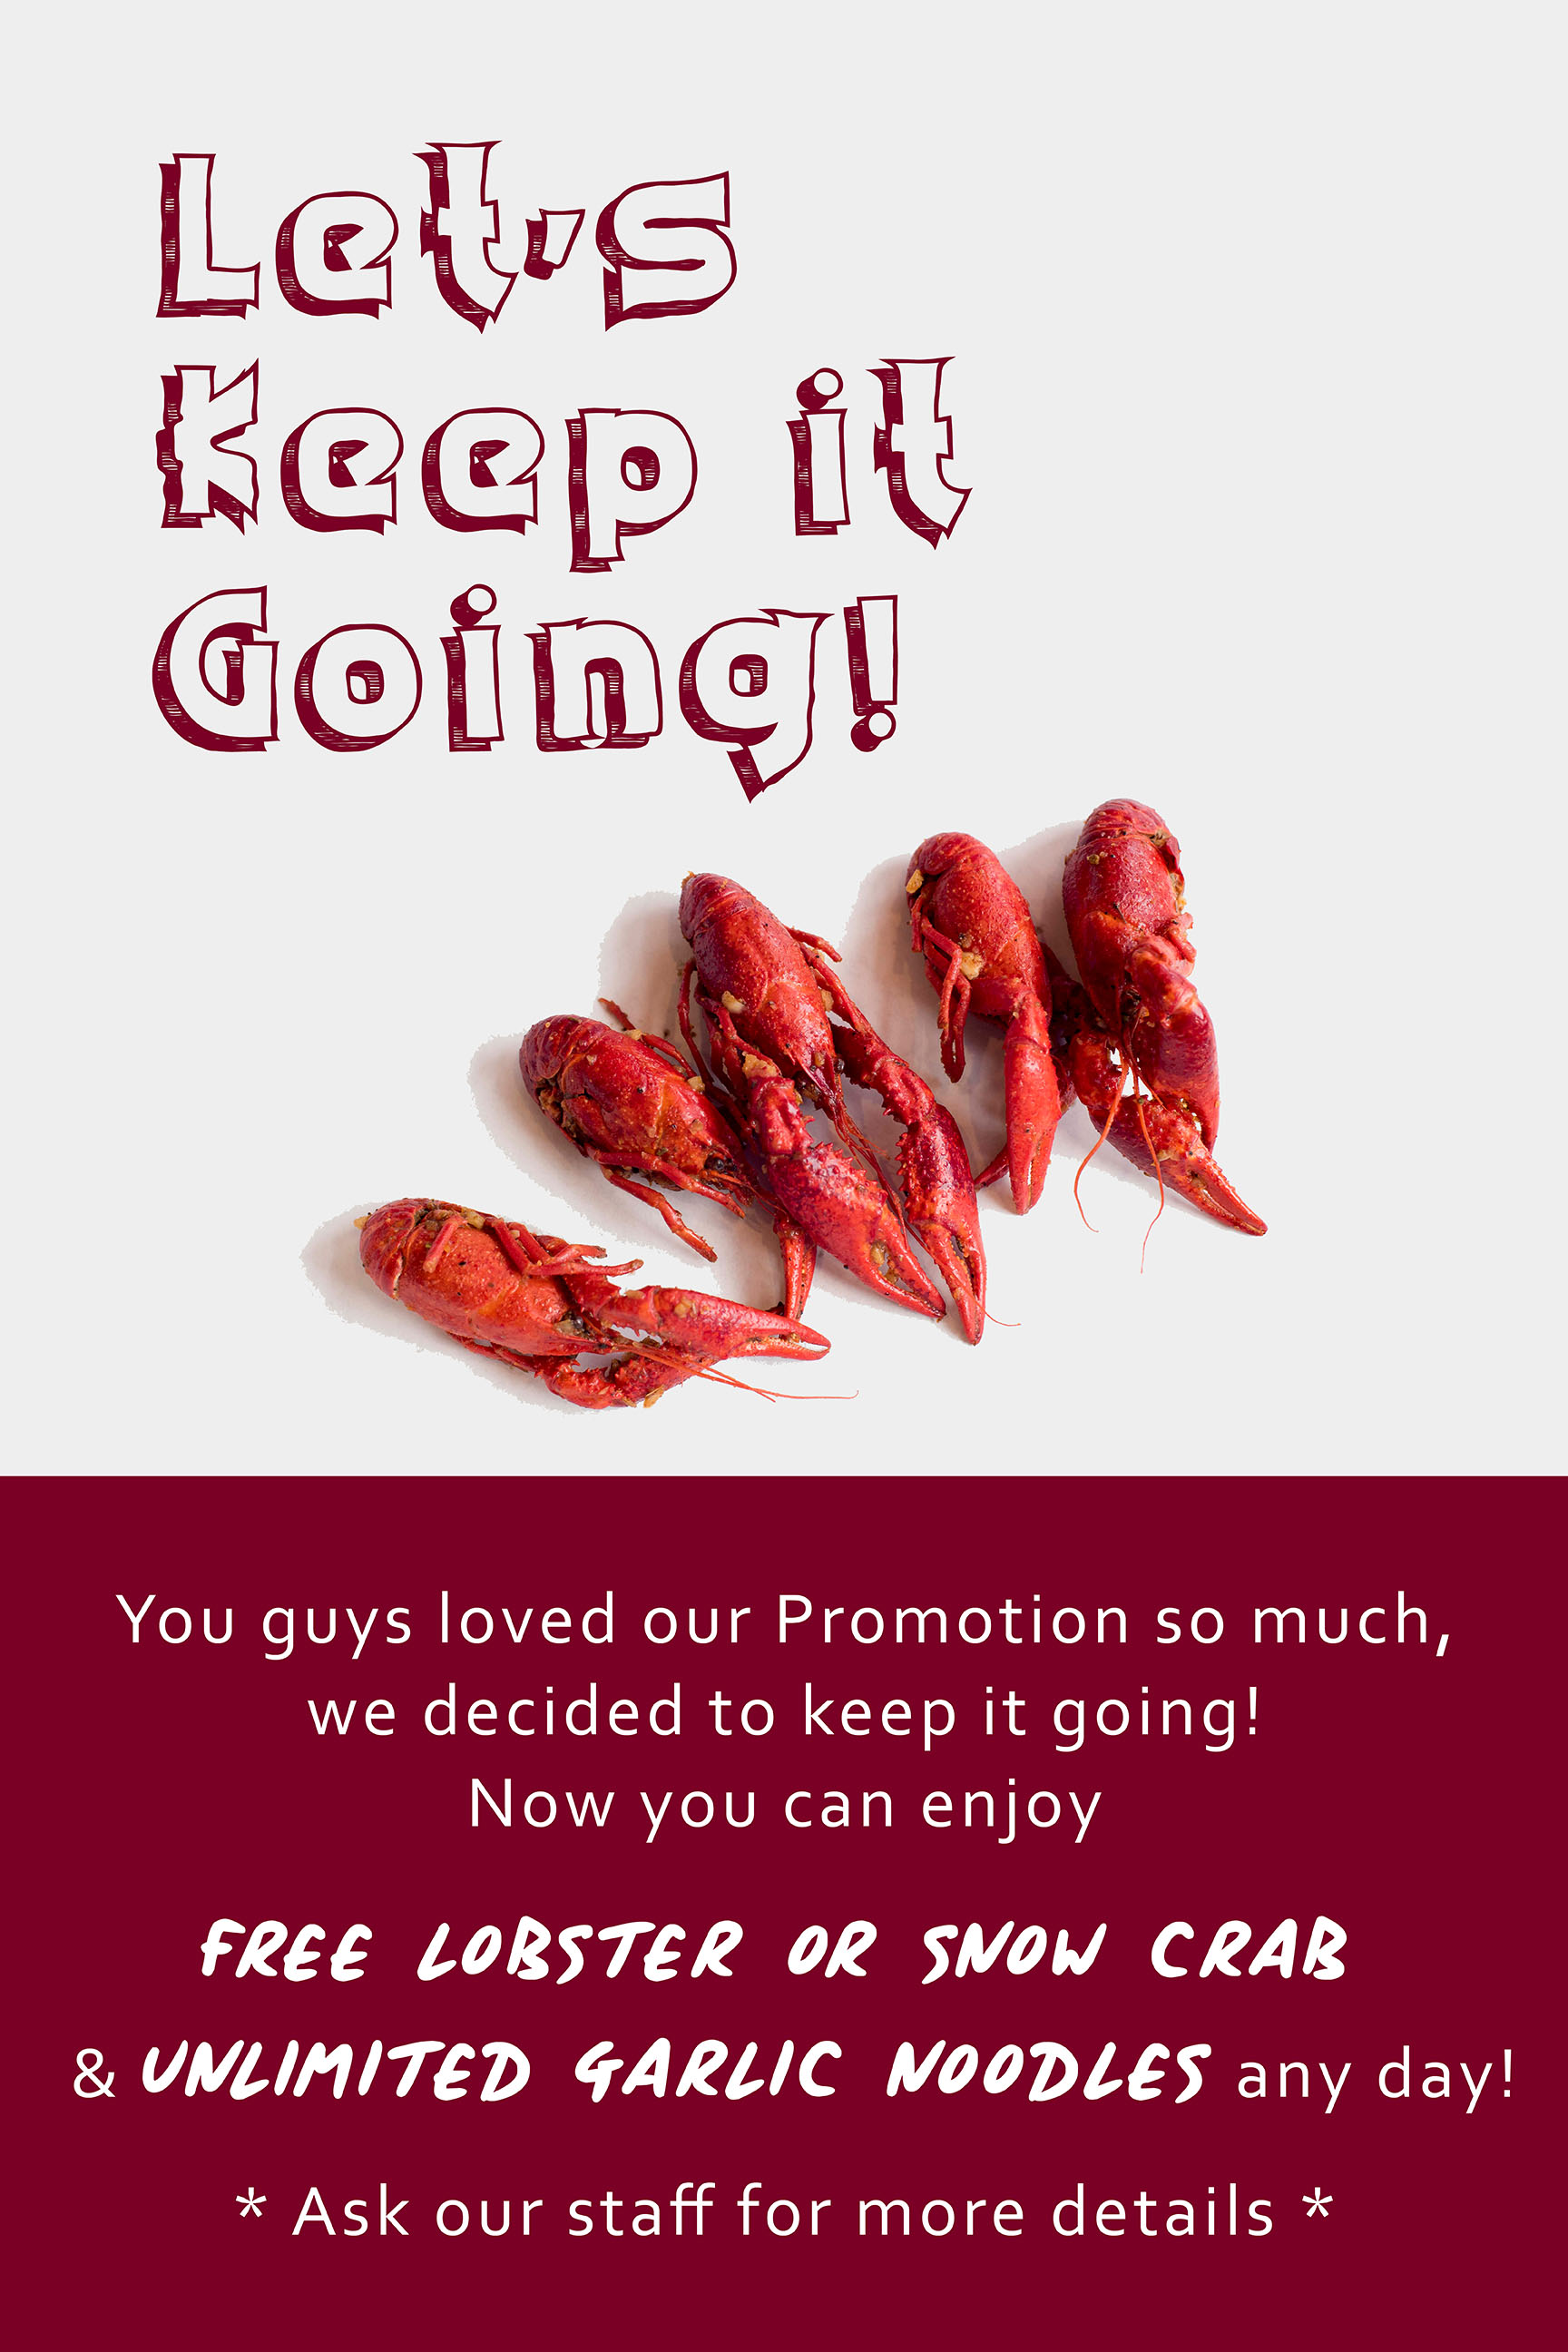 Now you can enjoy FREE LOBSTER or SNOW CRAB & Unlimited Garlic Noodles any day! - When you order our combos you get one of the followings :Pick 2 - Free French Fries or Garlic NoodlesPick 3 - Free Crawfish or MussslesPick 4 - Free Lobster or Snow Crab